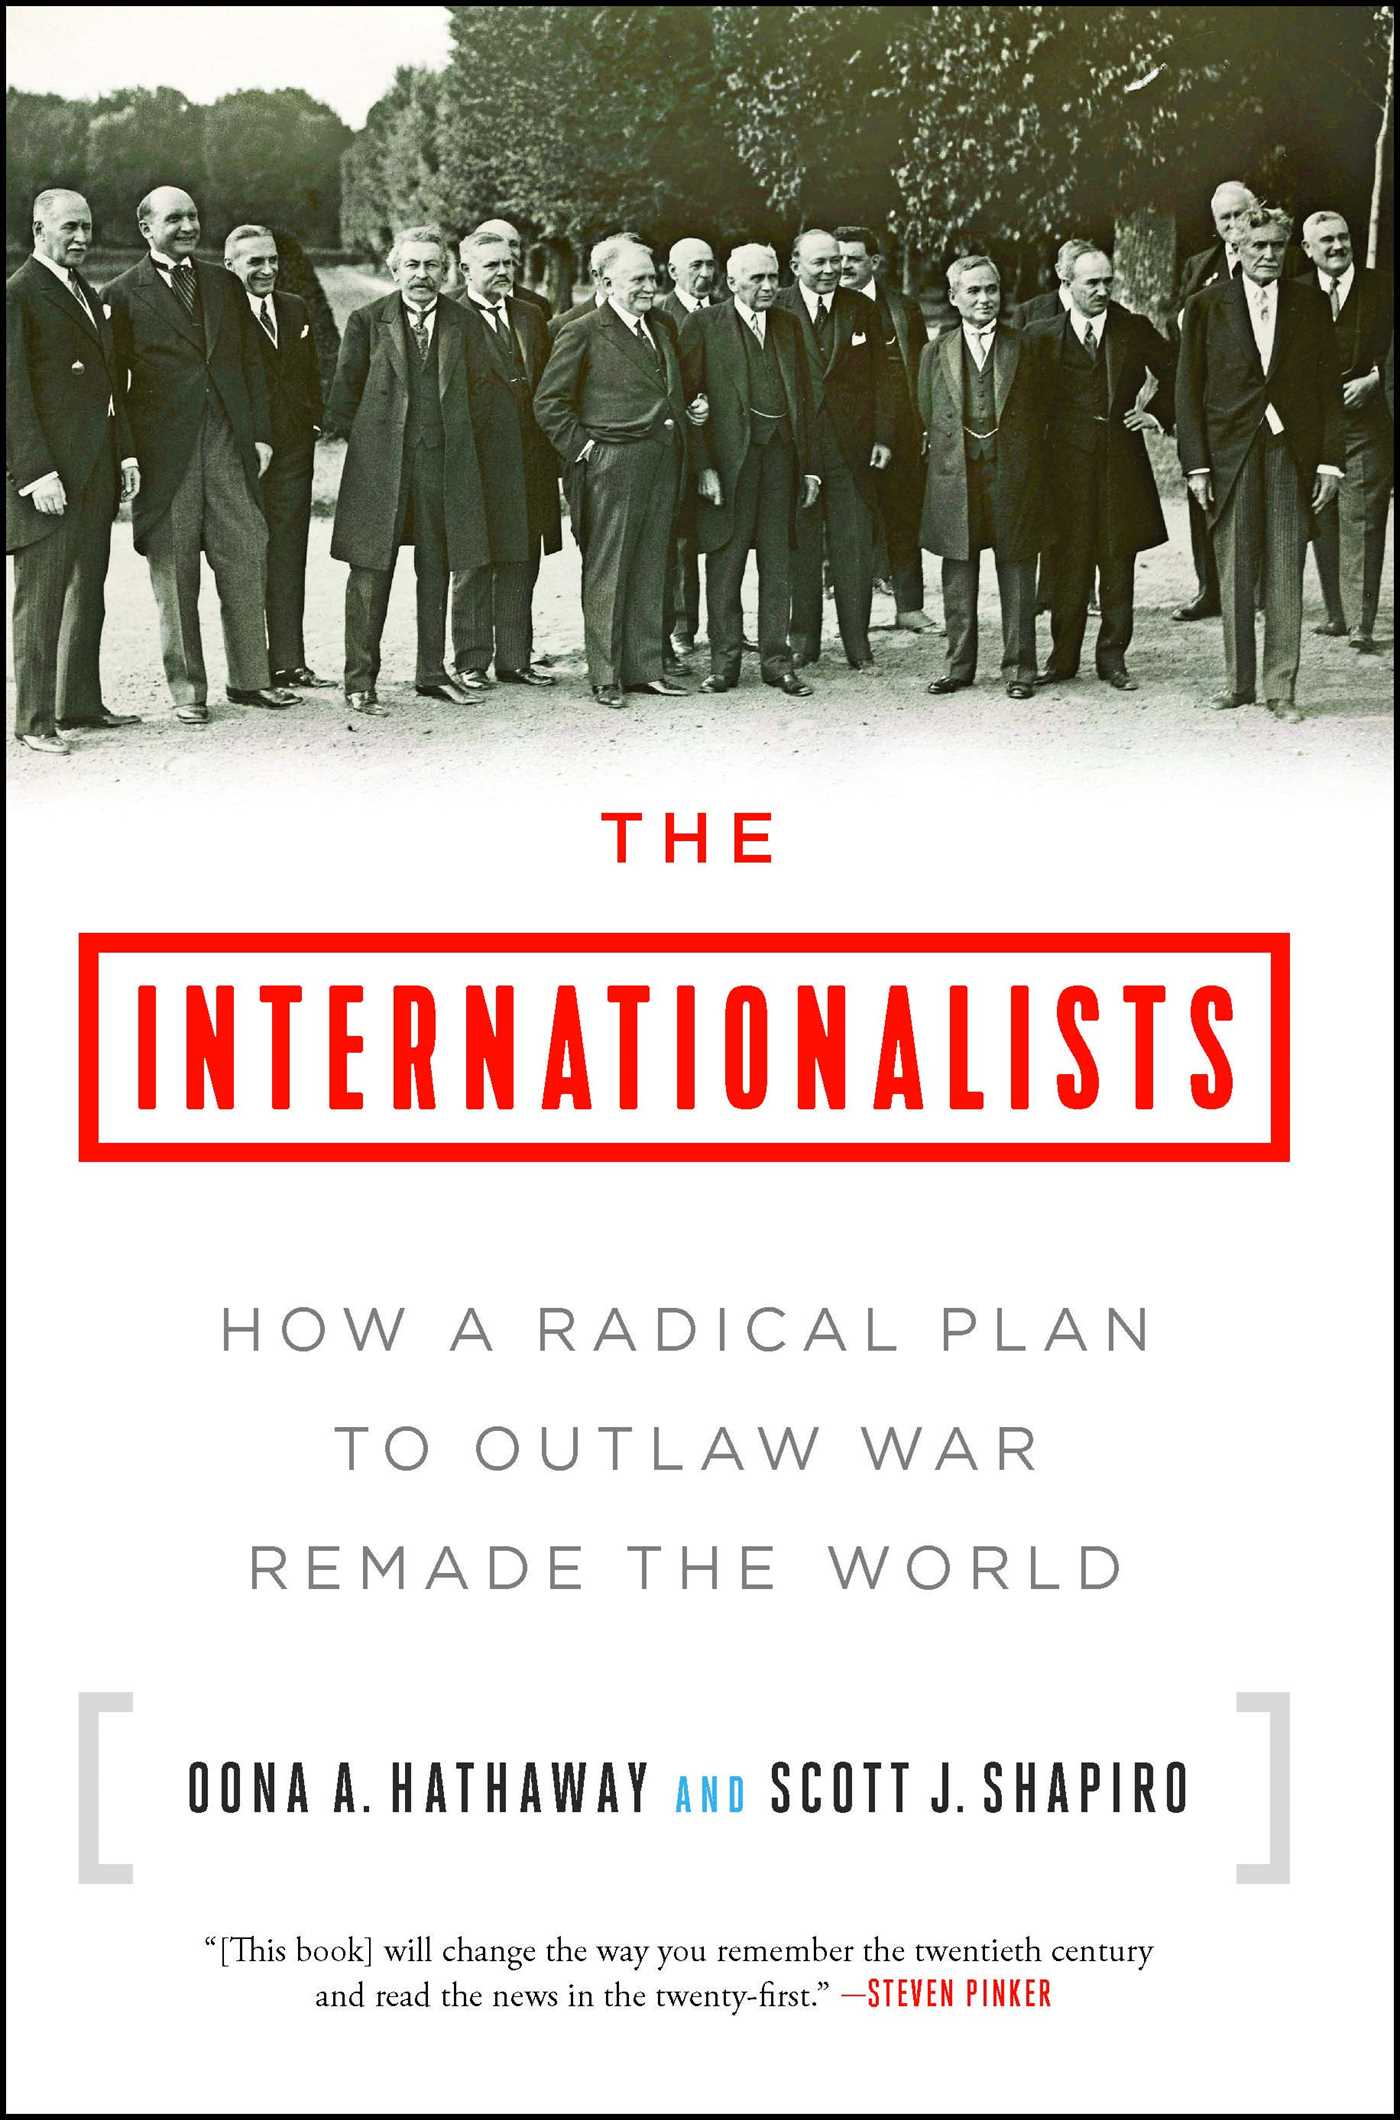 The Internationalists How a Radical Plan to Outlaw War Remade the World